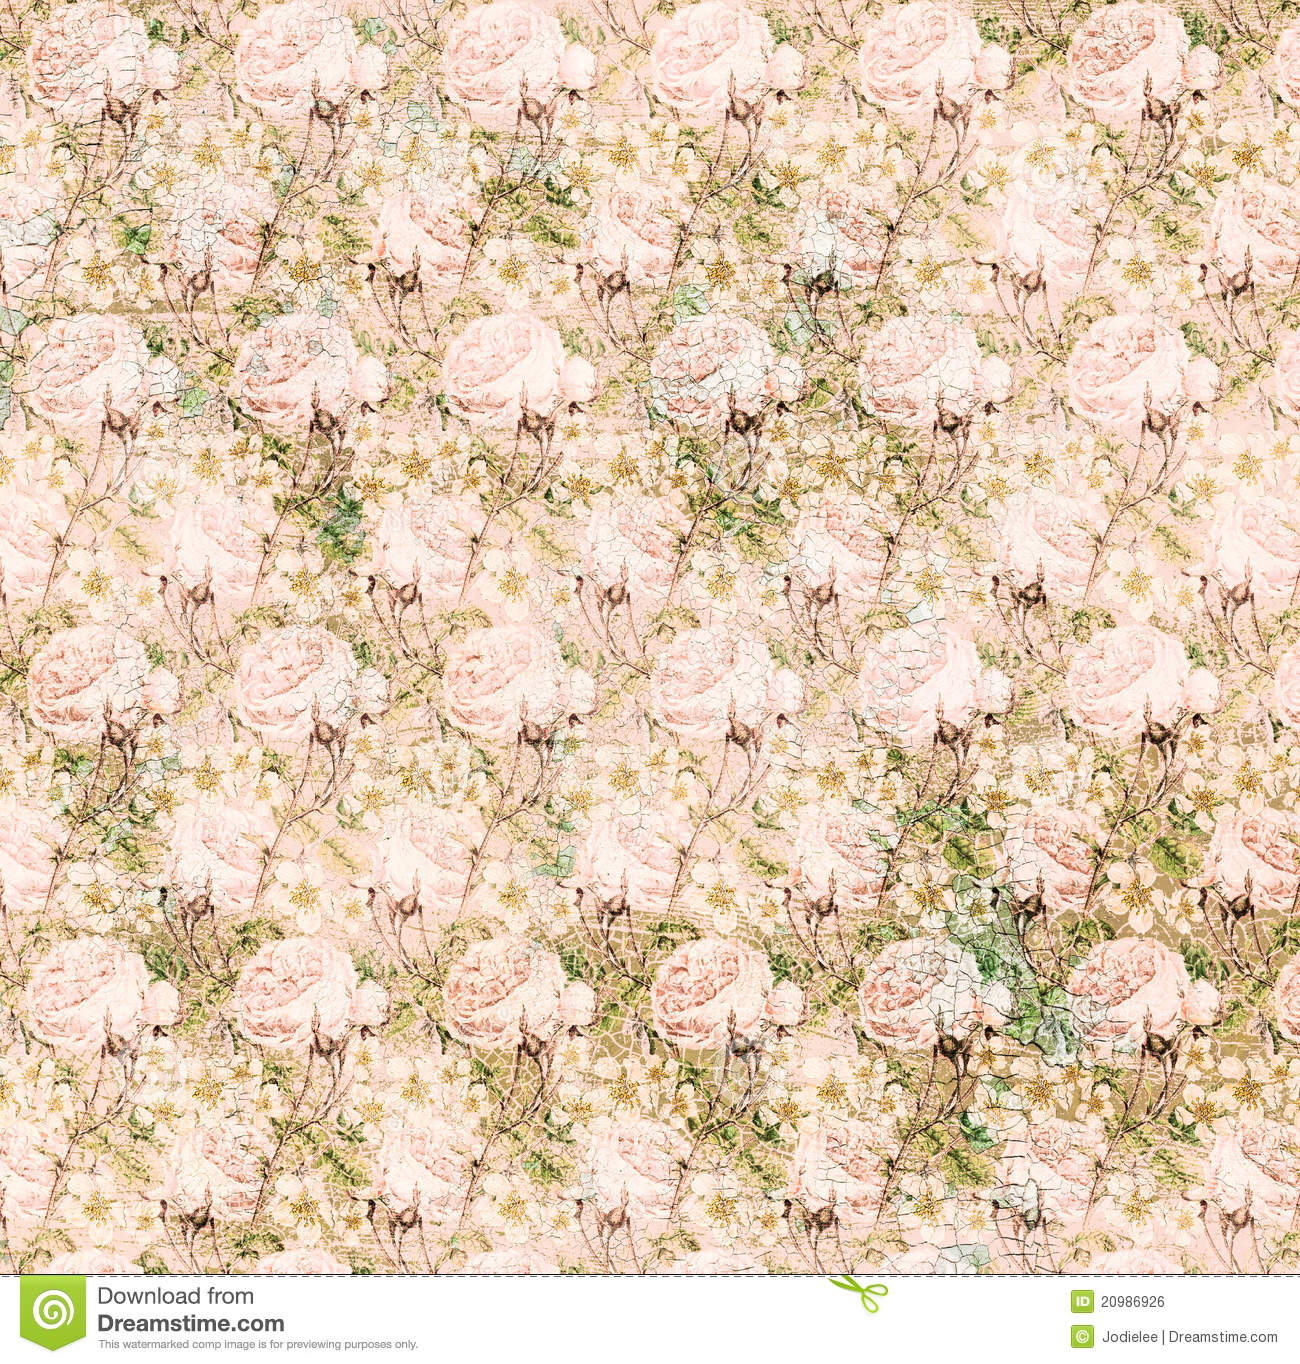 Vintage shabby pink chic rose background texture stock - Papel vintage pared ...